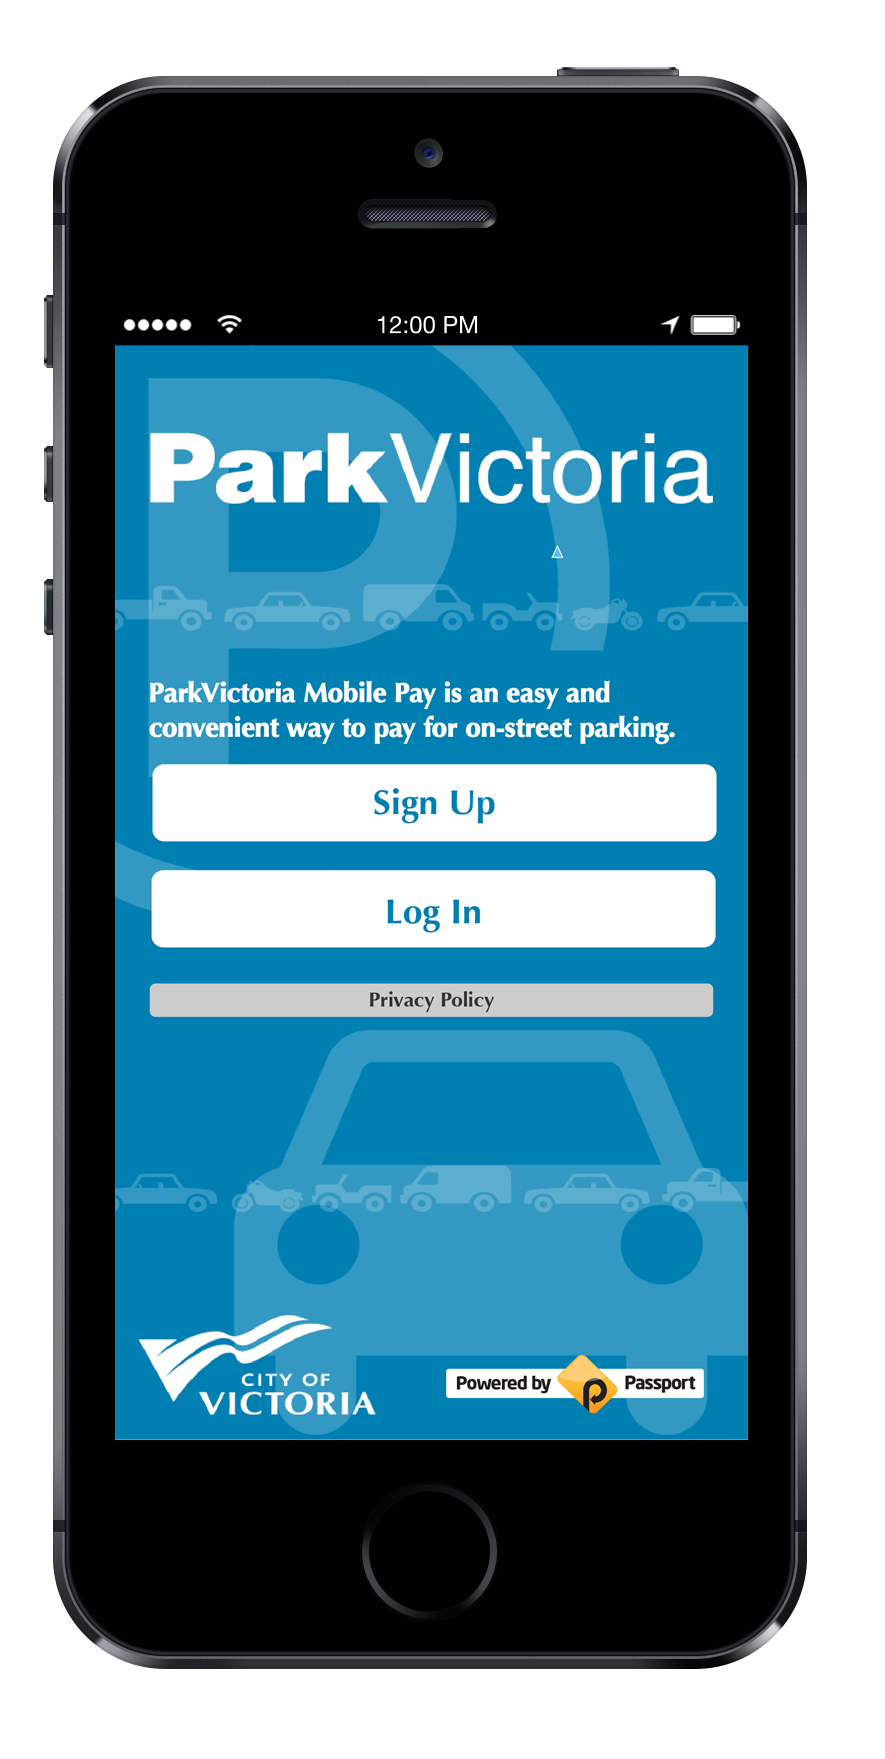 Parkvictoria Mobile Payment App For On Street Parking